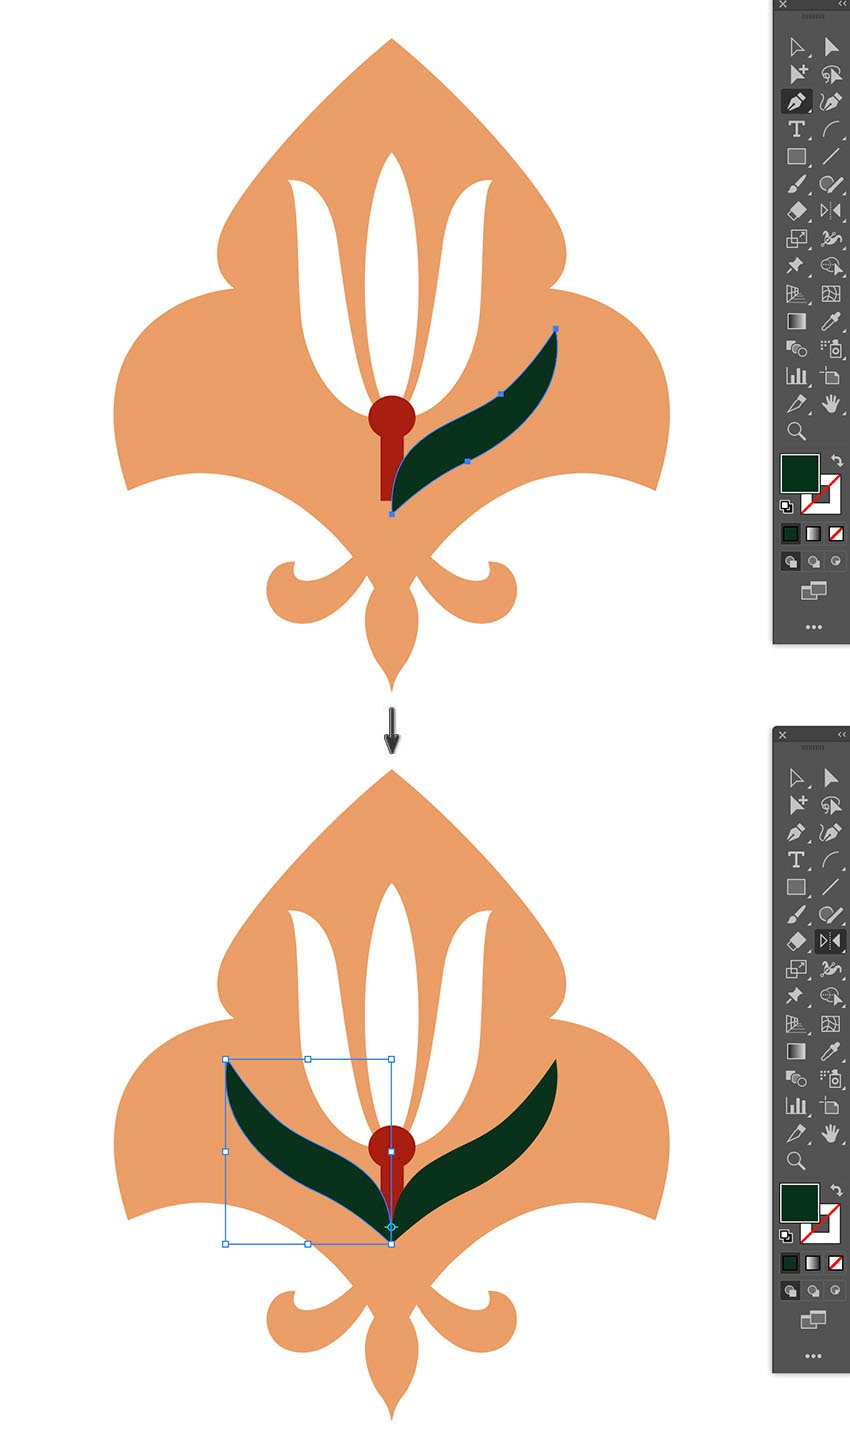 create flower sepal using pen tool and reflect across using reflect tool